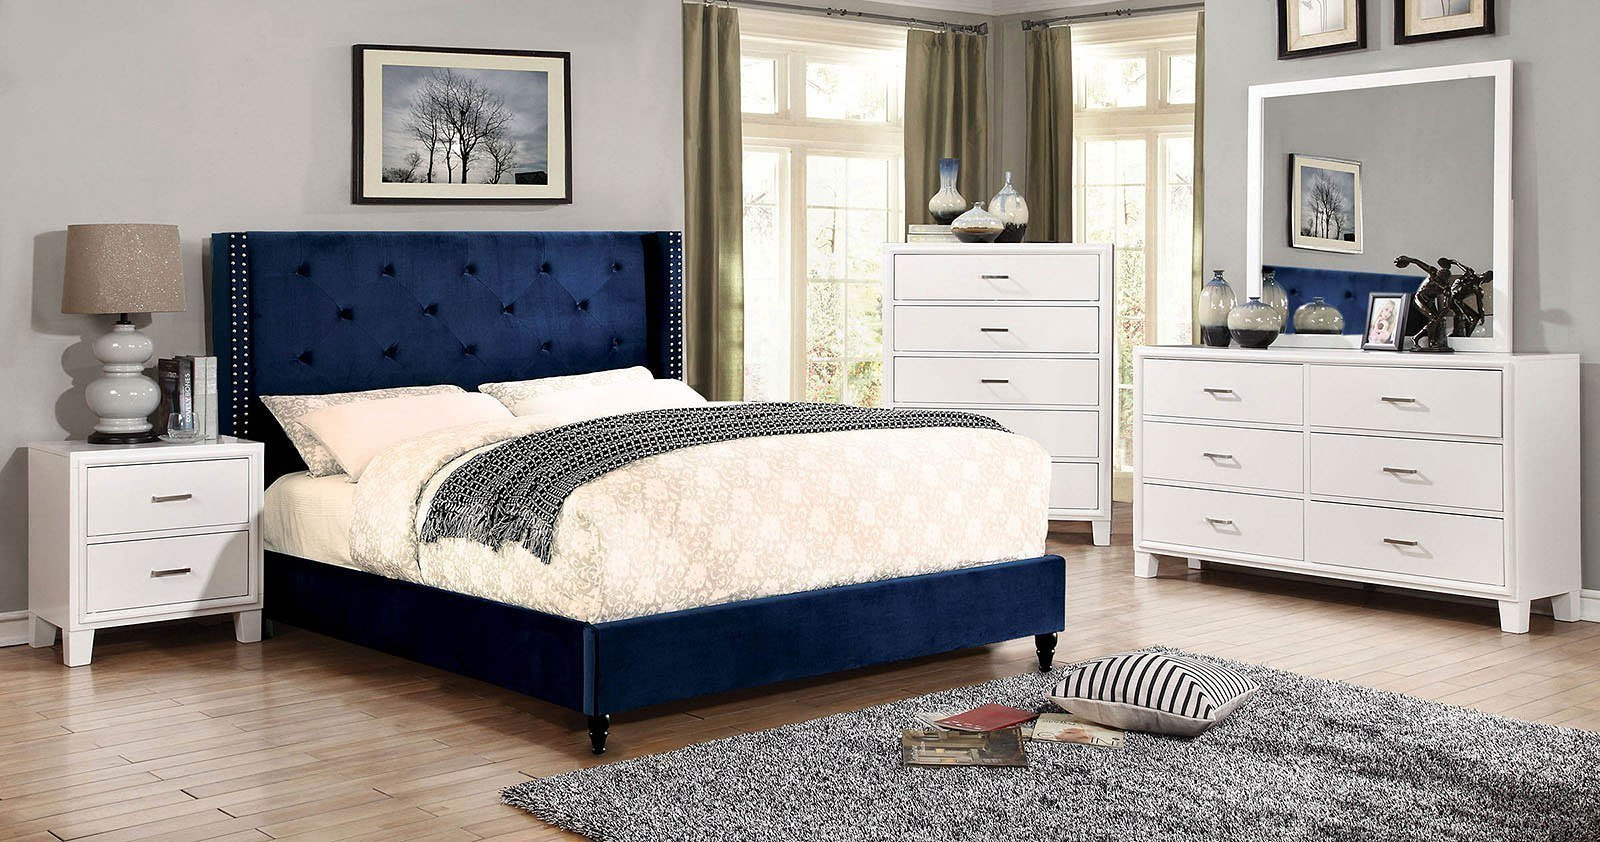 Best Anabelle Navy Upholstered Bedroom Set Furniture Of America With Pictures